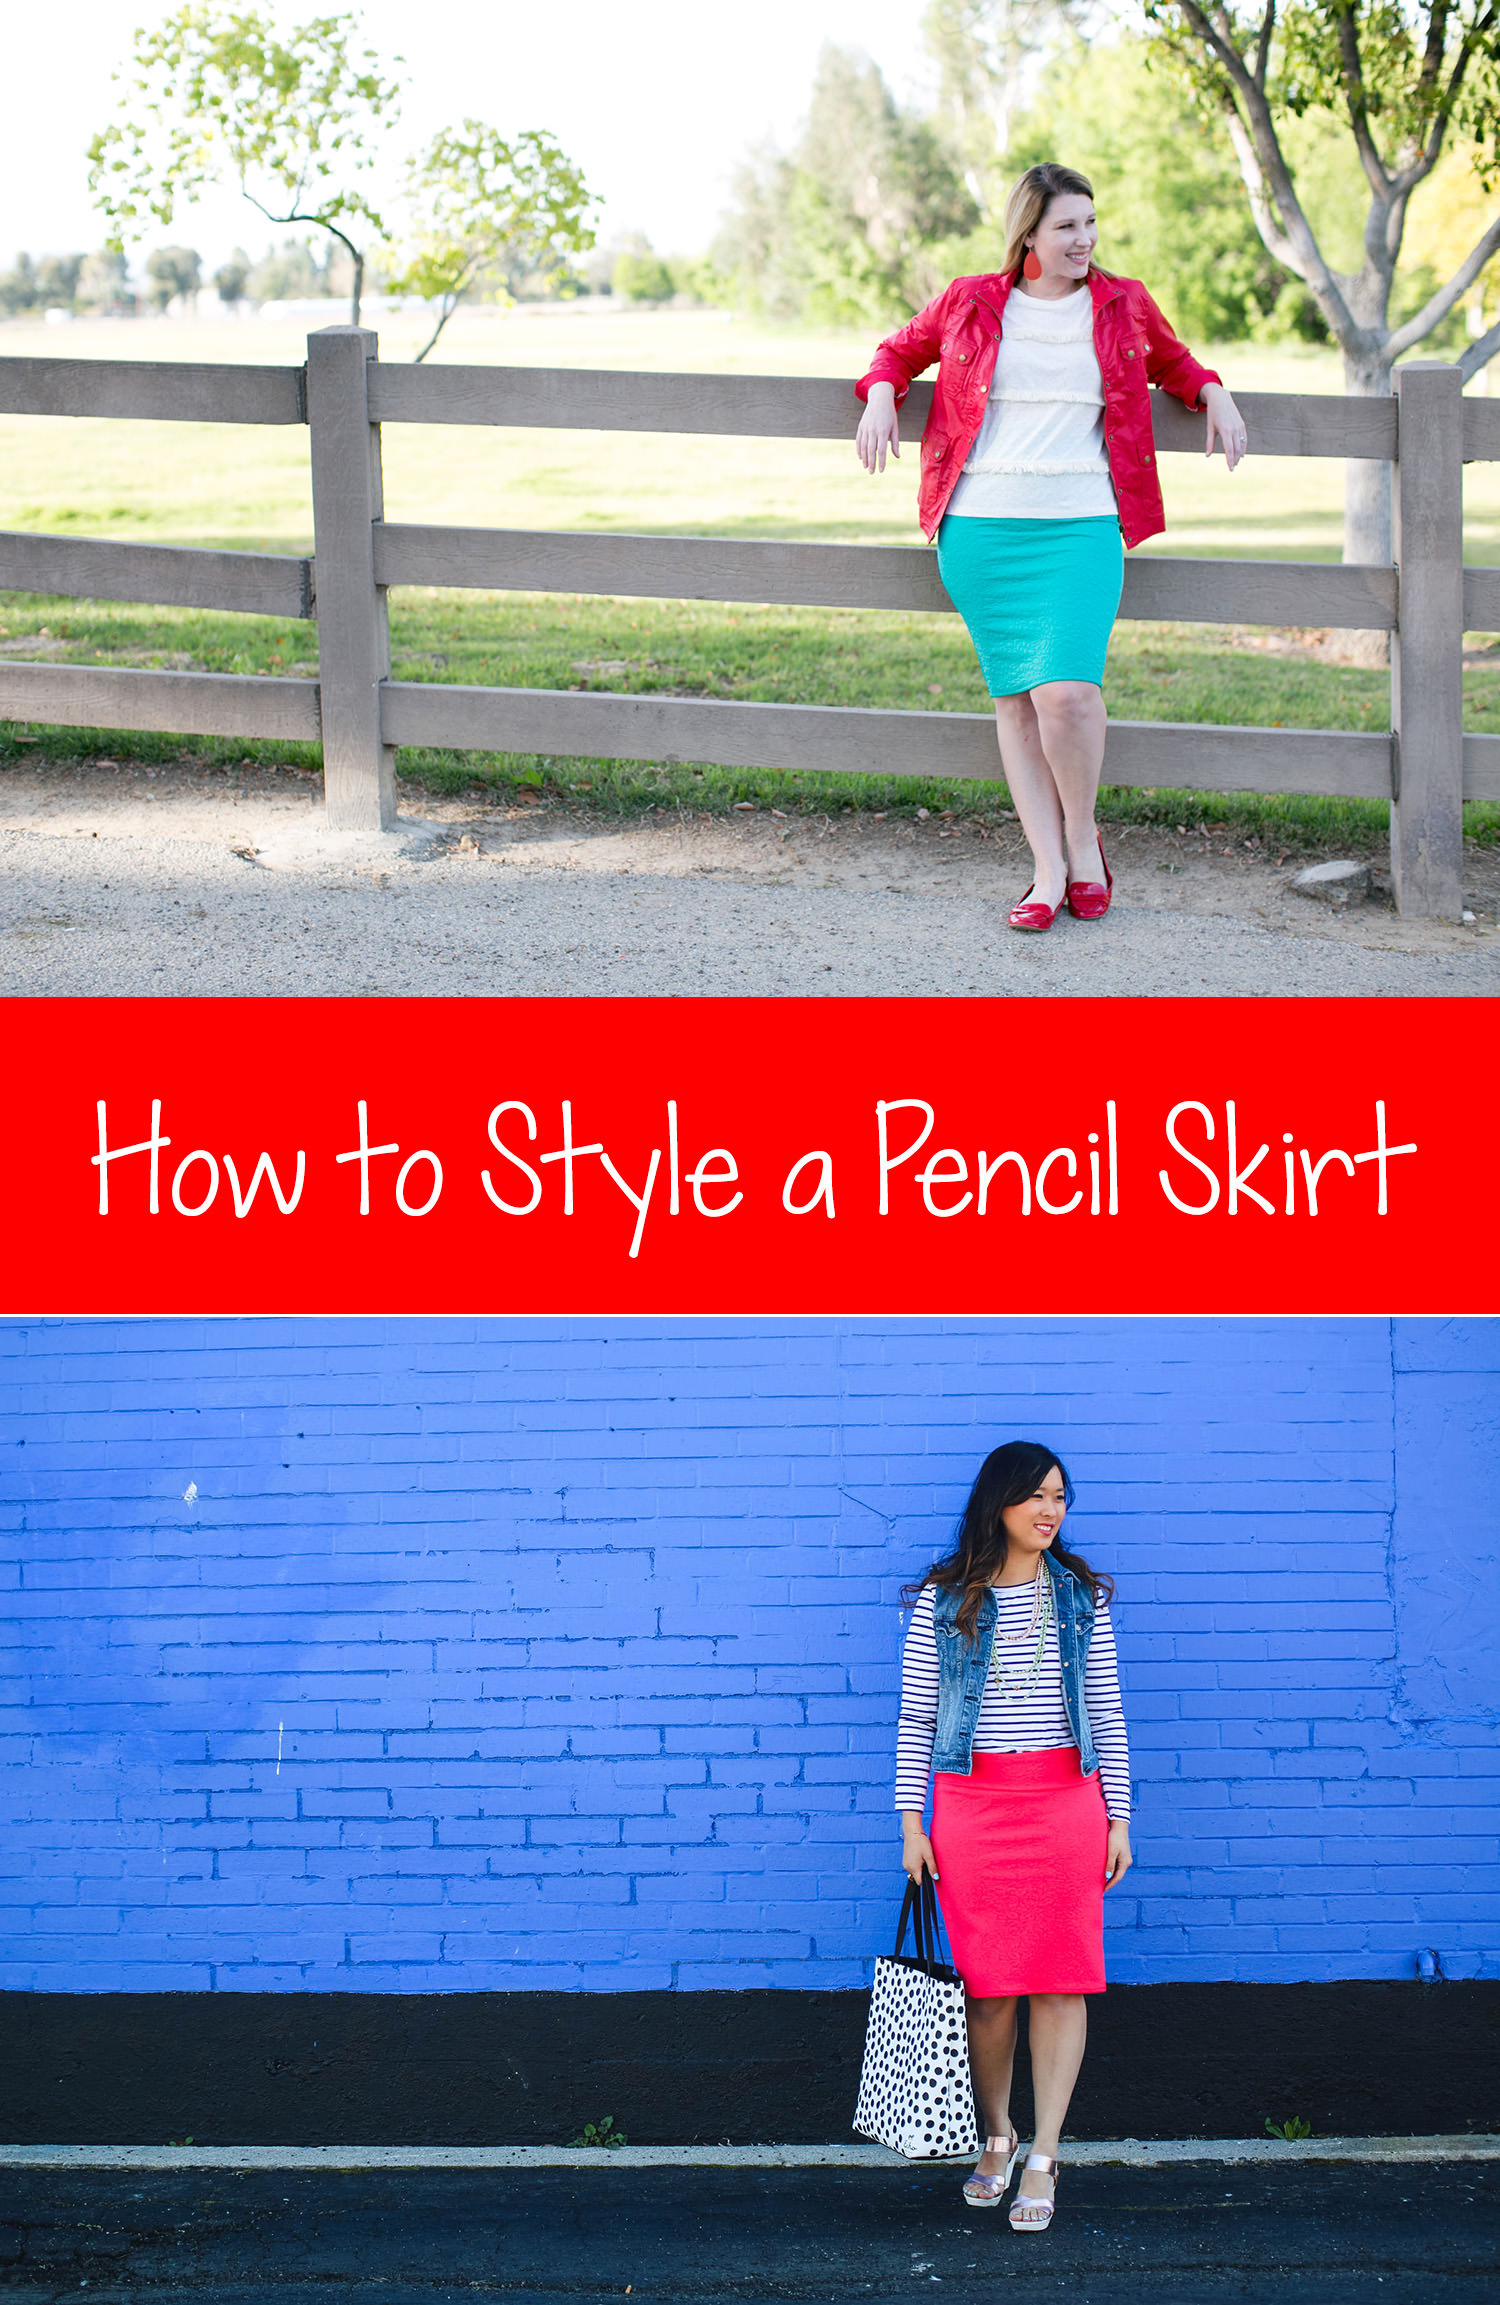 Looking for simple ways to style a pencil skirt? This spring outfit shows how to wear the Lula Roe Cassie Skirt perfectly!